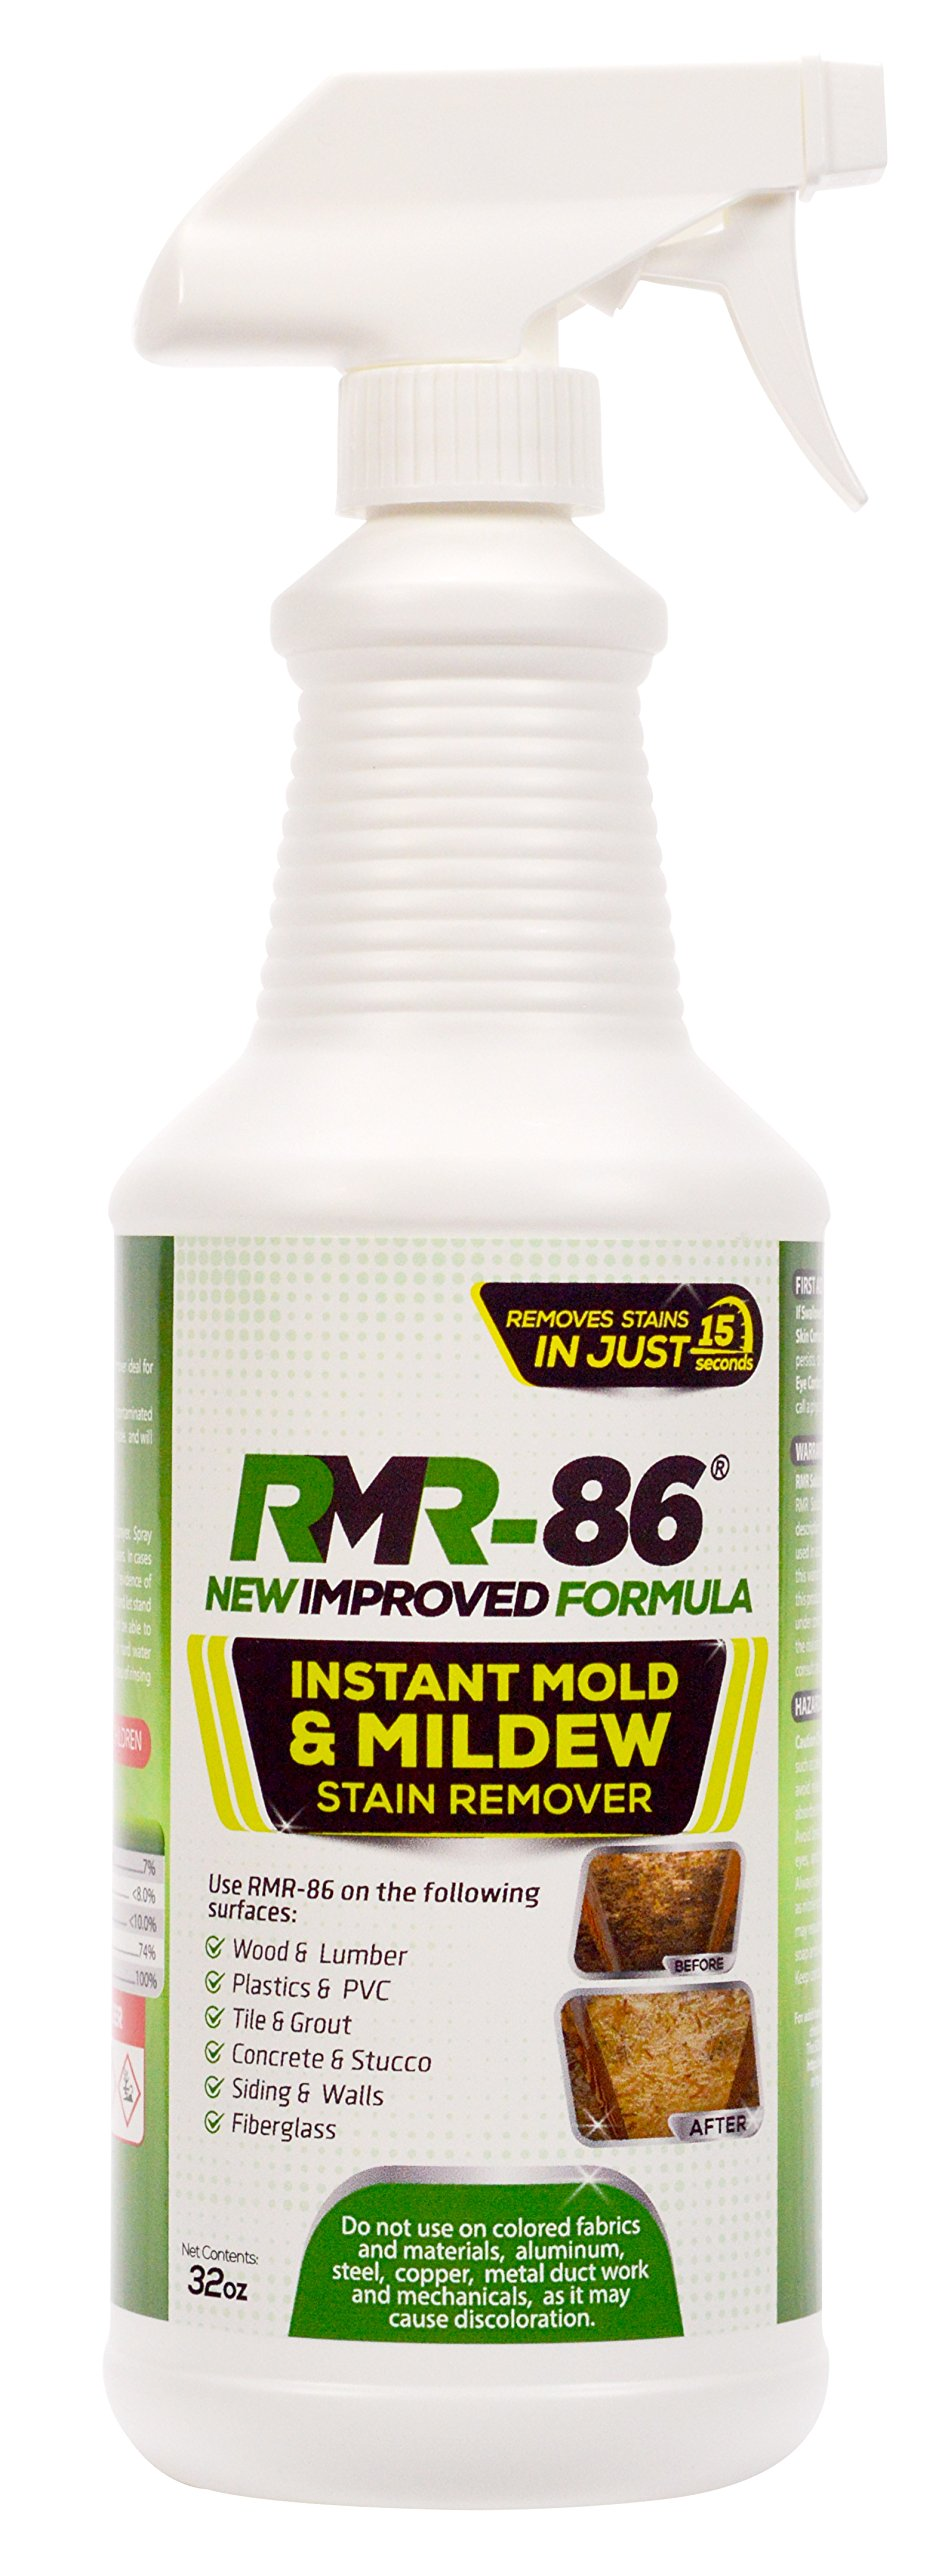 RMR-86 Instant Mold Stain & Mildew Stain Remover - 32 oz w/Sprayer